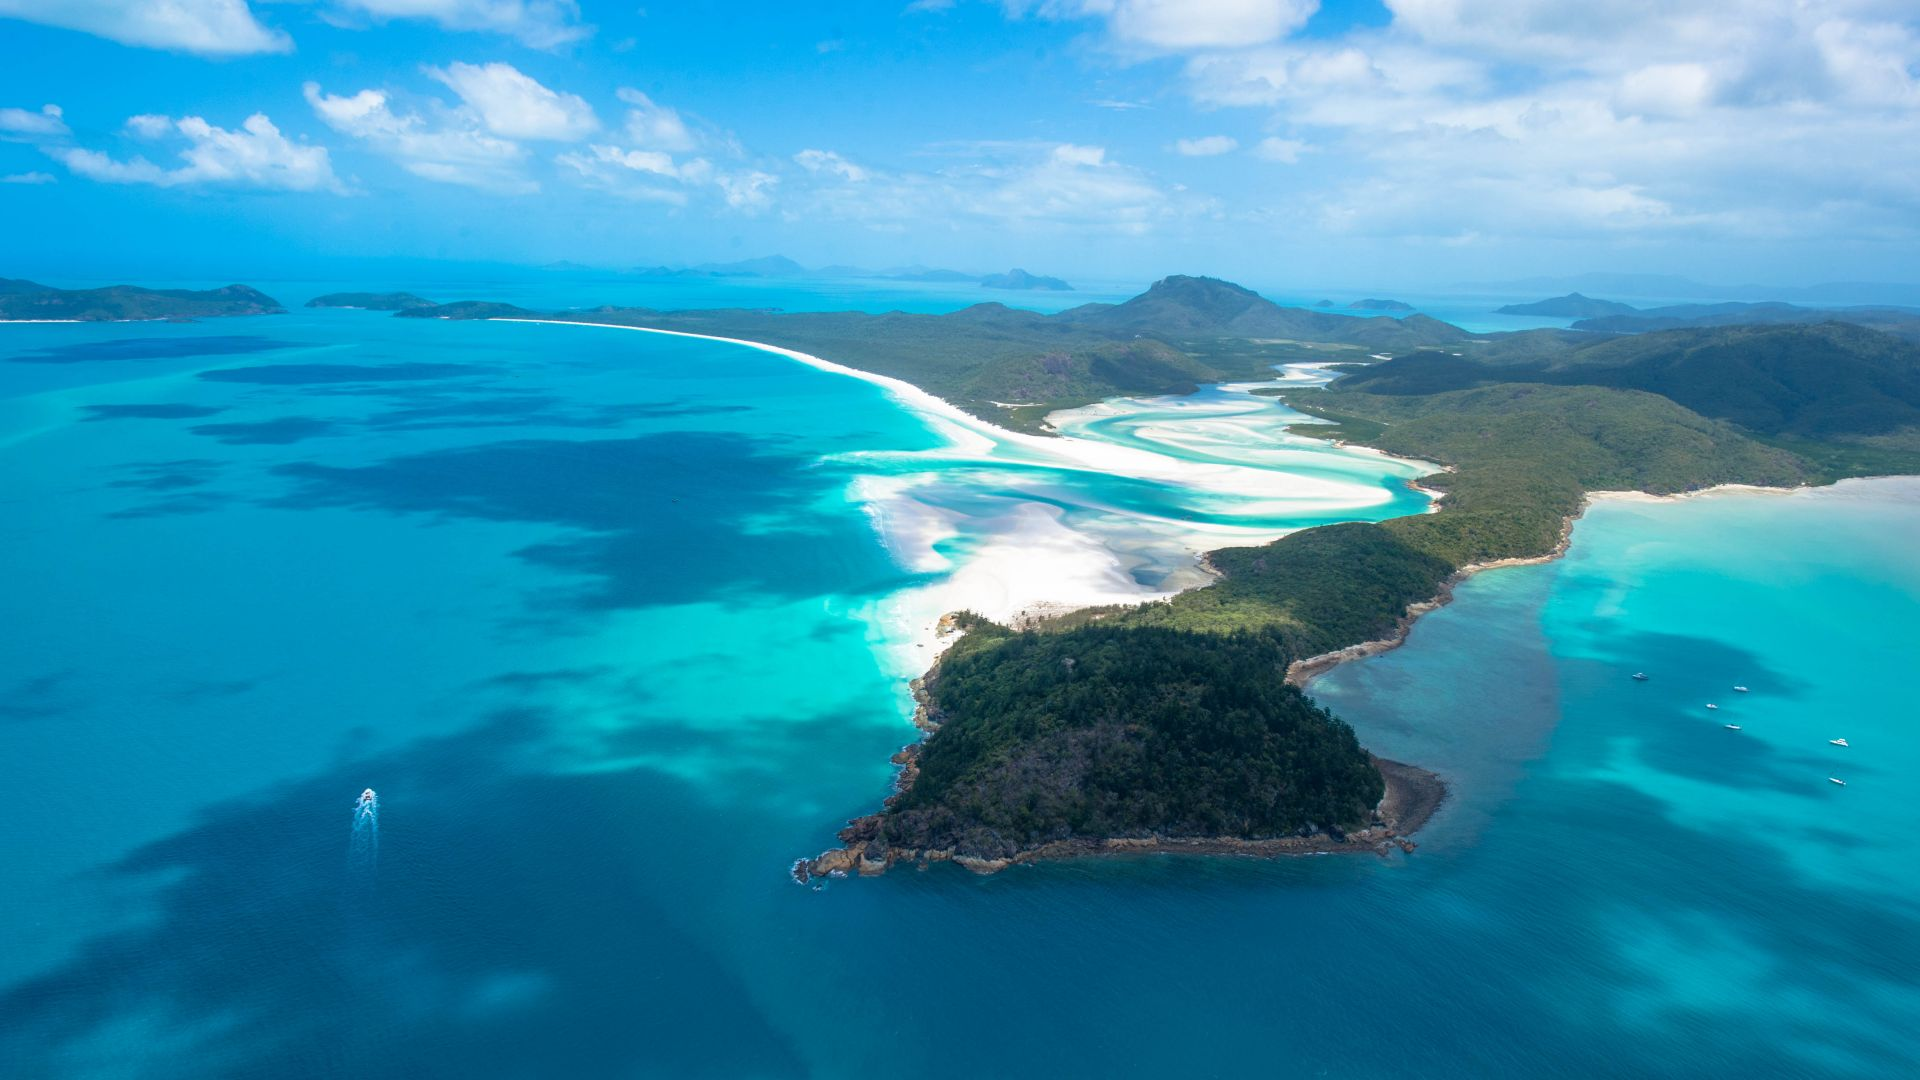 Вайтхевен, остров Духов День, лучшие пляжи 2016, Travellers Choice Awards 2016, Whitehaven Beach, Whitsunday Island, Best beaches of 2016, Travellers Choice Awards 2016 (horizontal)